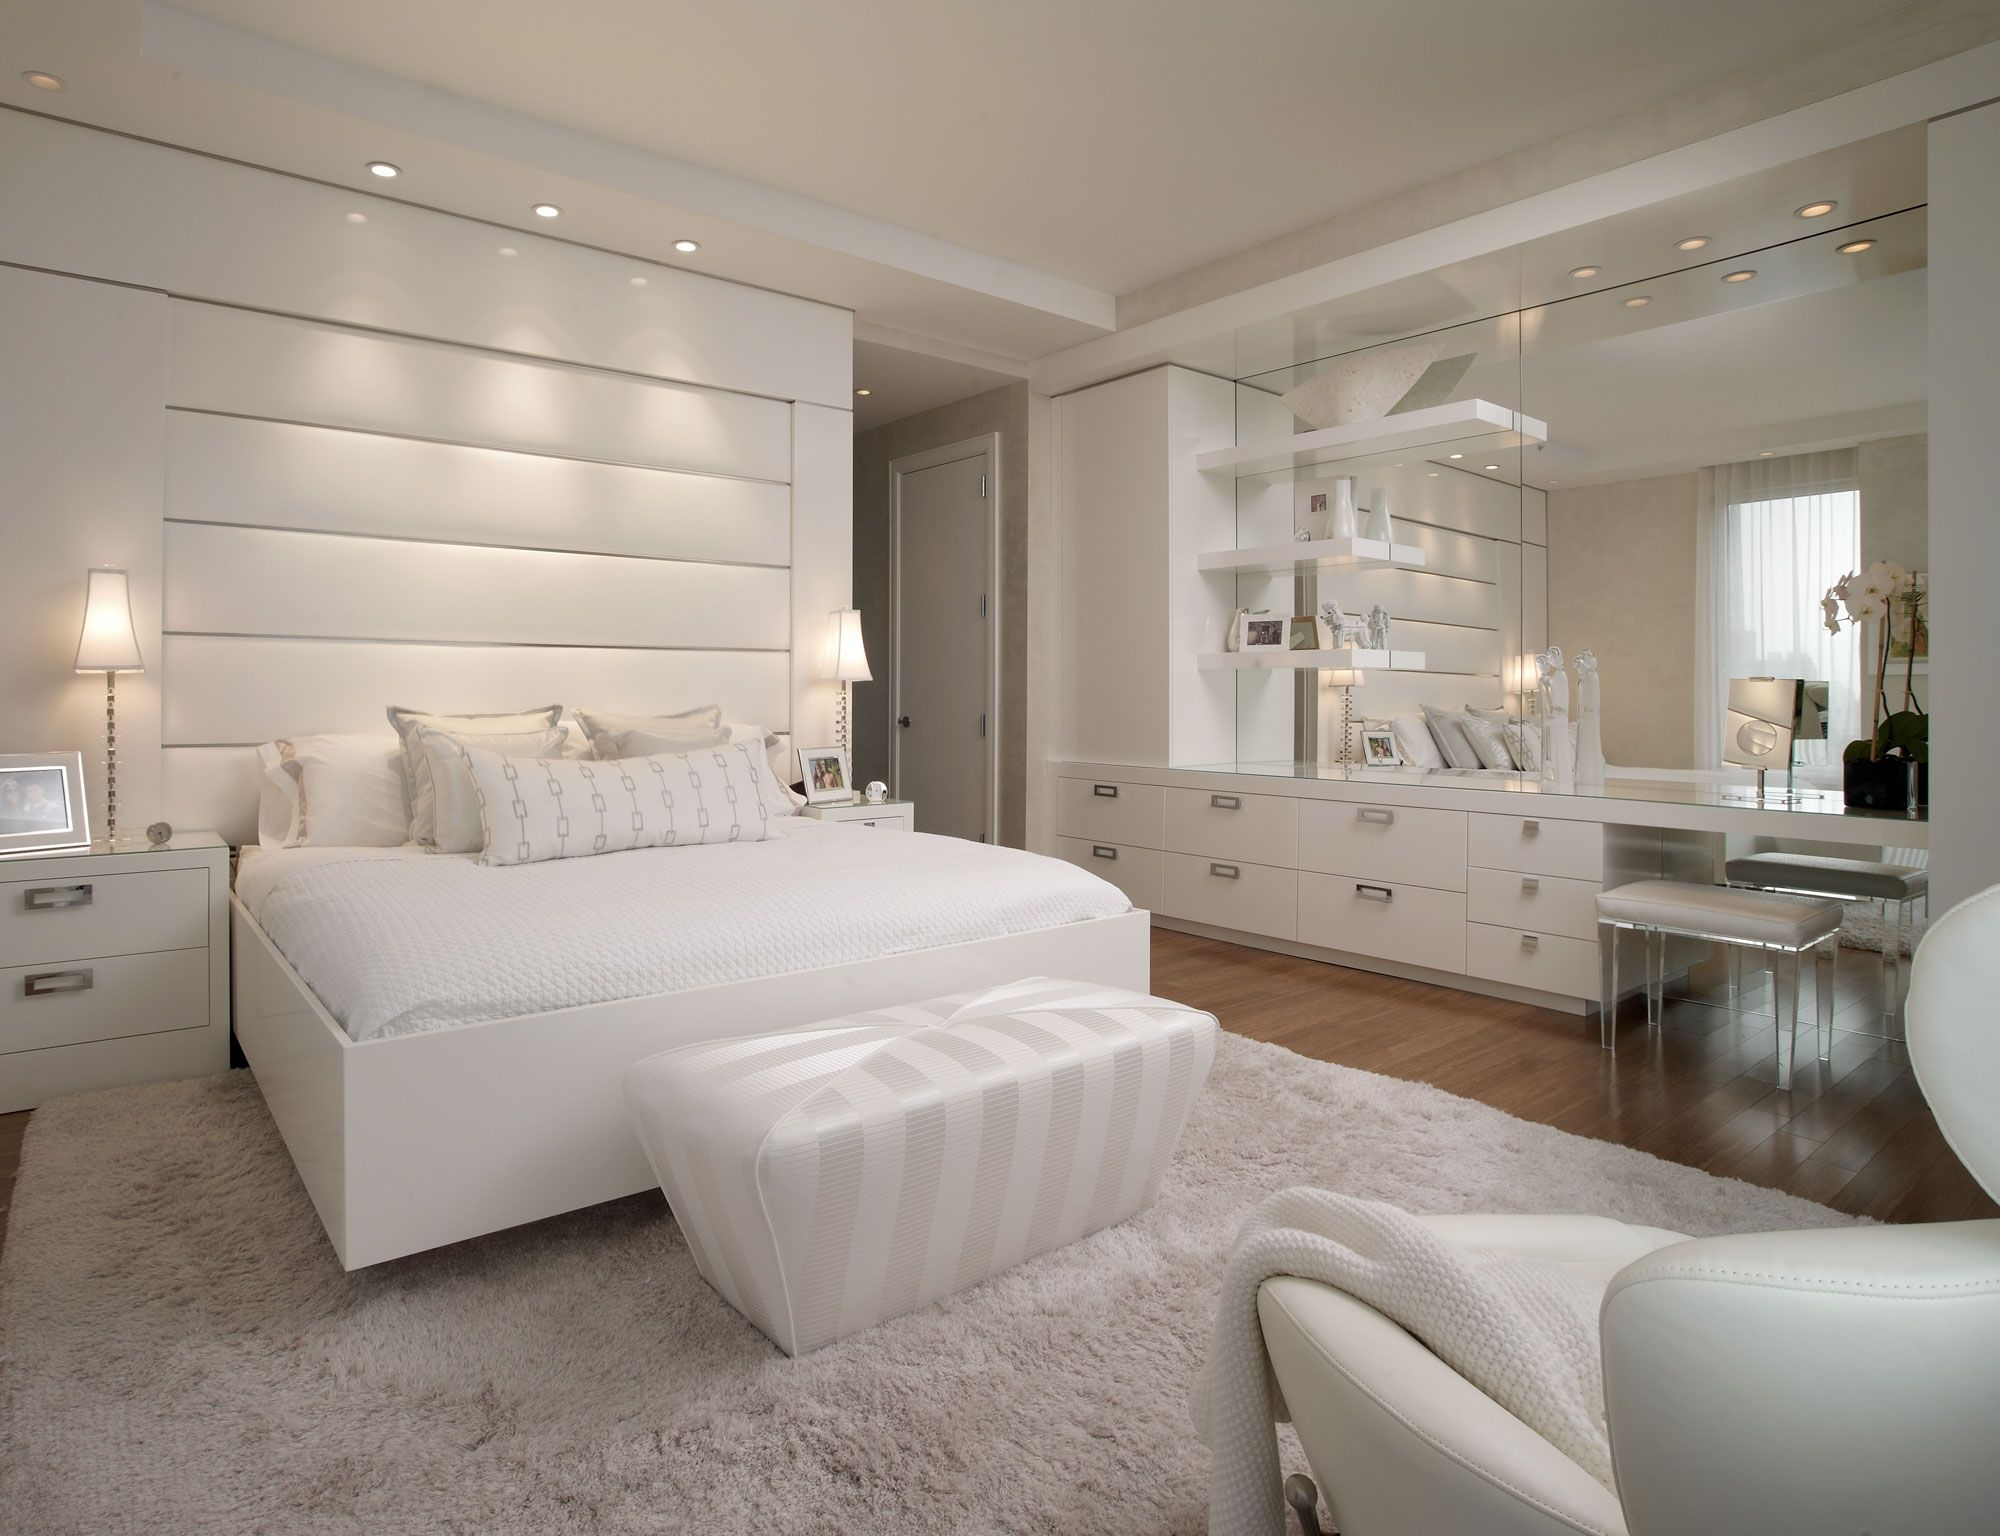 Luxury all white bedroom decorating ideas amazing for Amazing bedroom designs